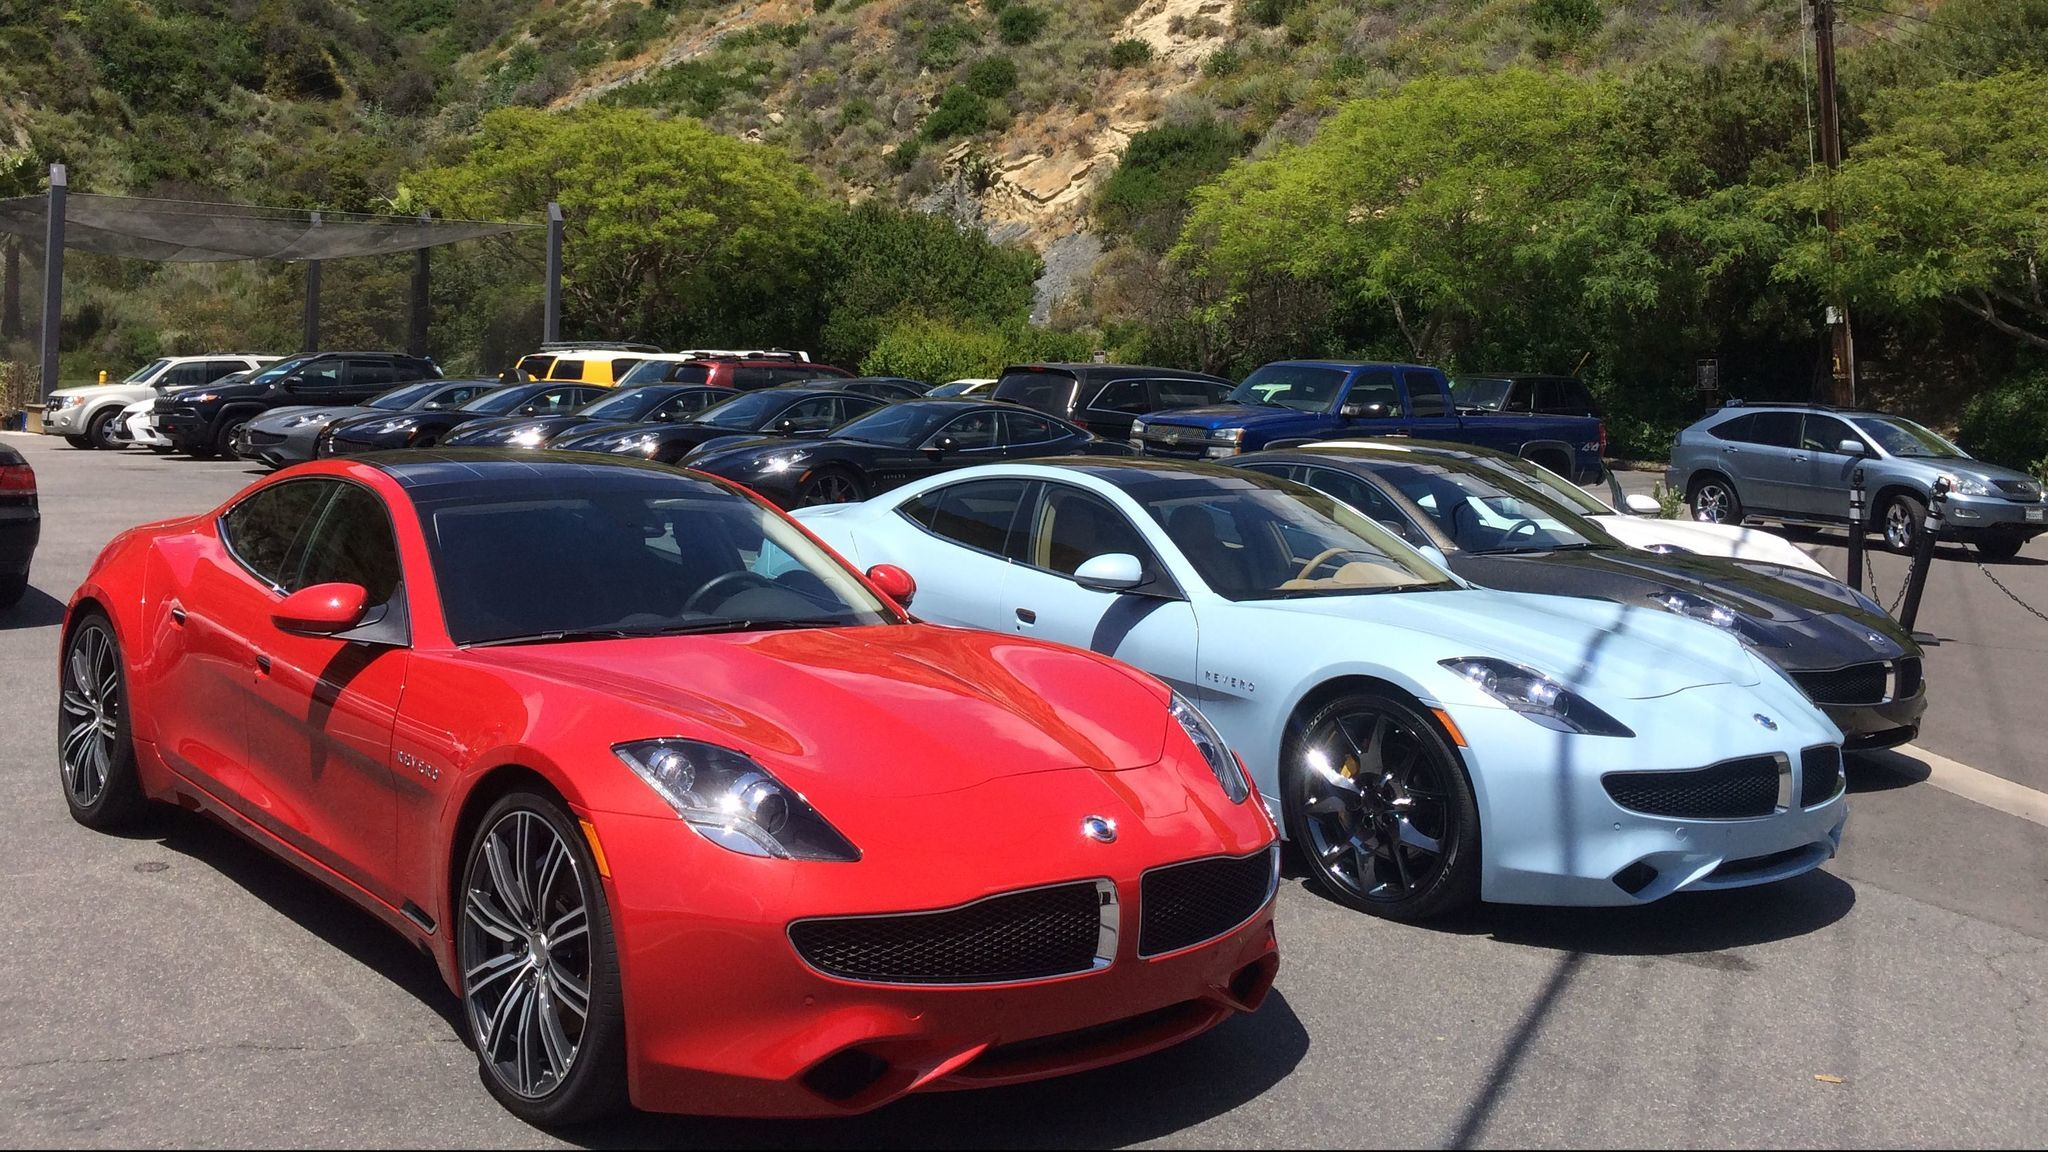 A Collection Of Karma Reveros Prepped For Driving Sit In Laguna Beach